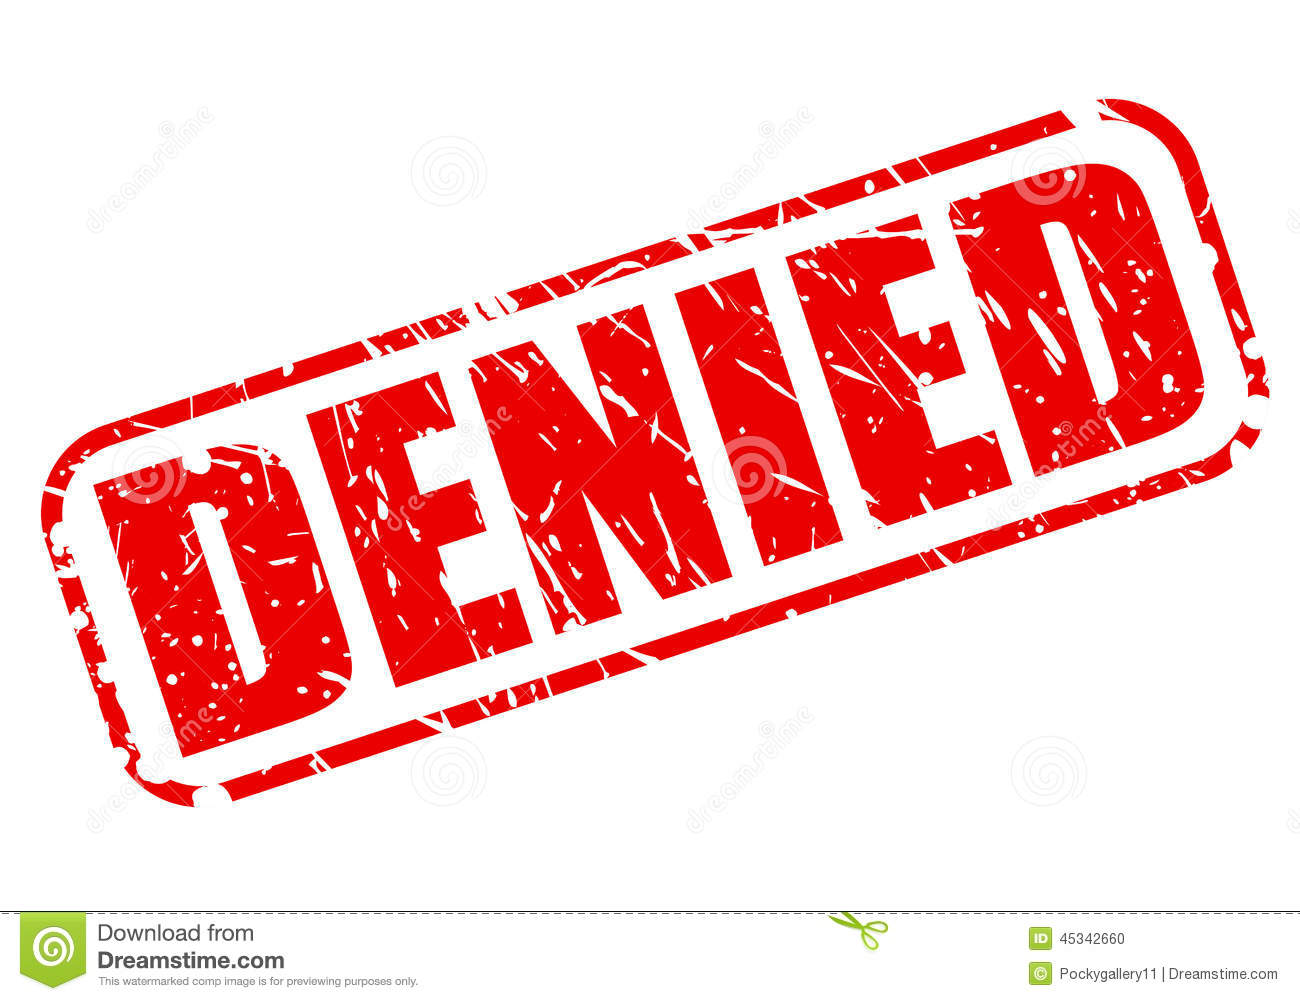 Denied >> Denied Red Stamp Text Stock Vector Illustration Of Isolated